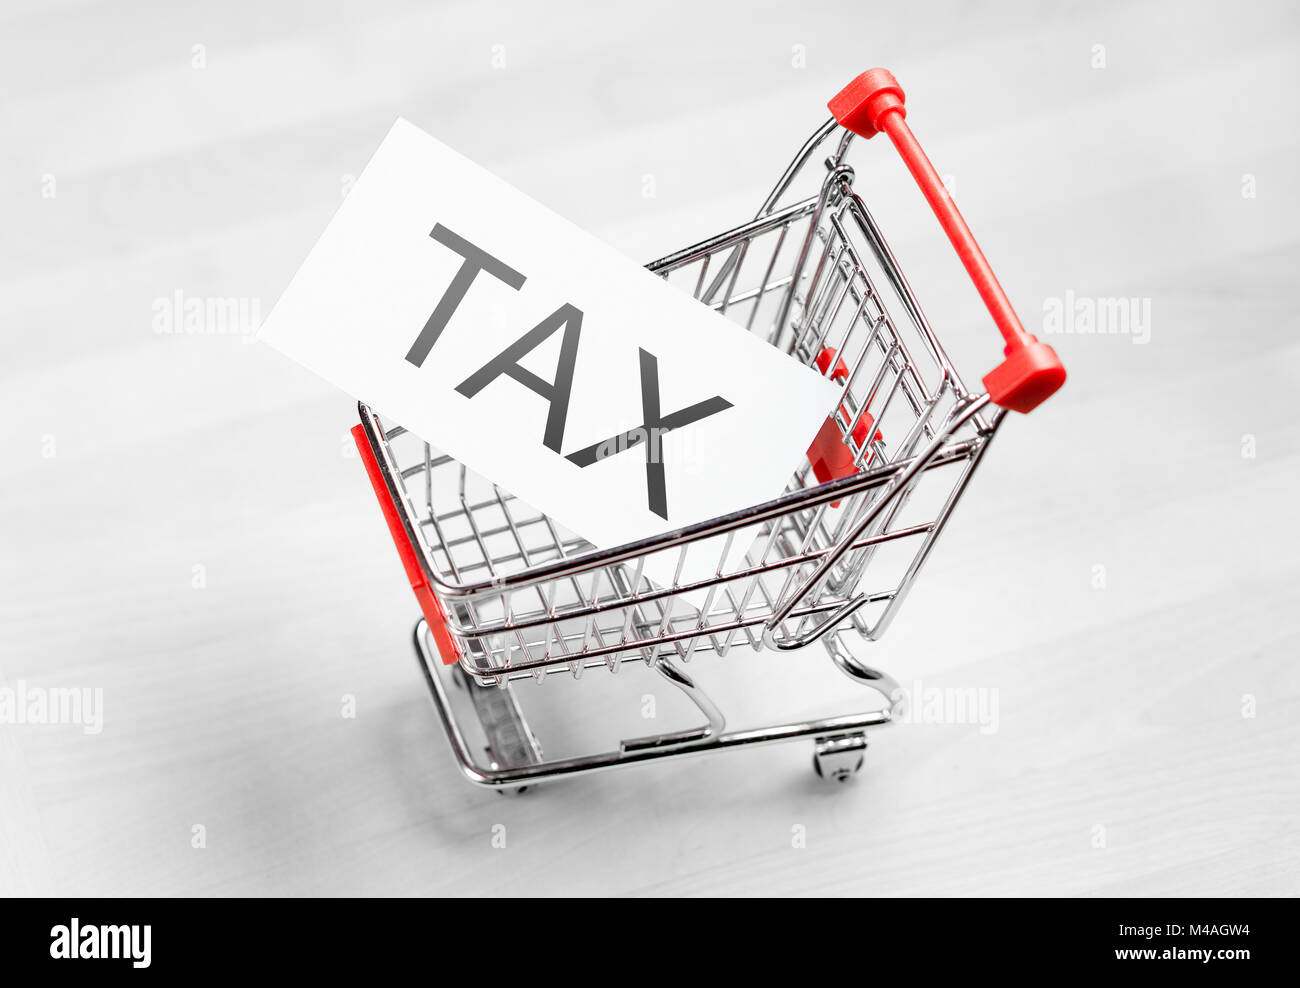 Tax, taxation and VAT concept. Shopping cart with a card or paper sign. - Stock Image